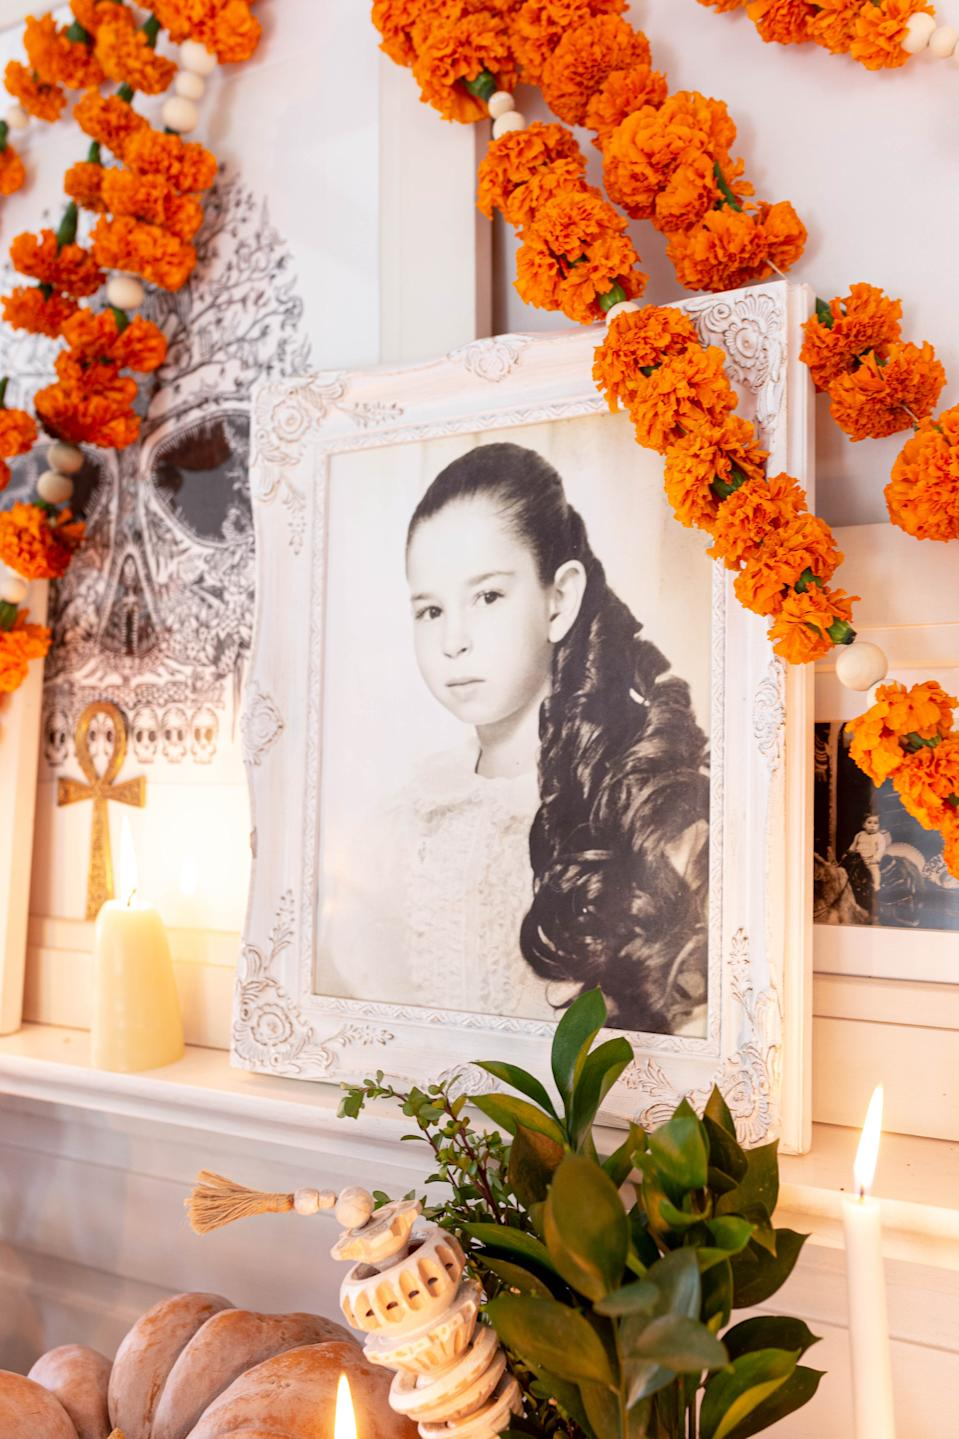 The ofrenda features a photo of Valladolid's mother, who passed away in 2008, as a young girl. (Photo: Cecilia Martin Del Campo)